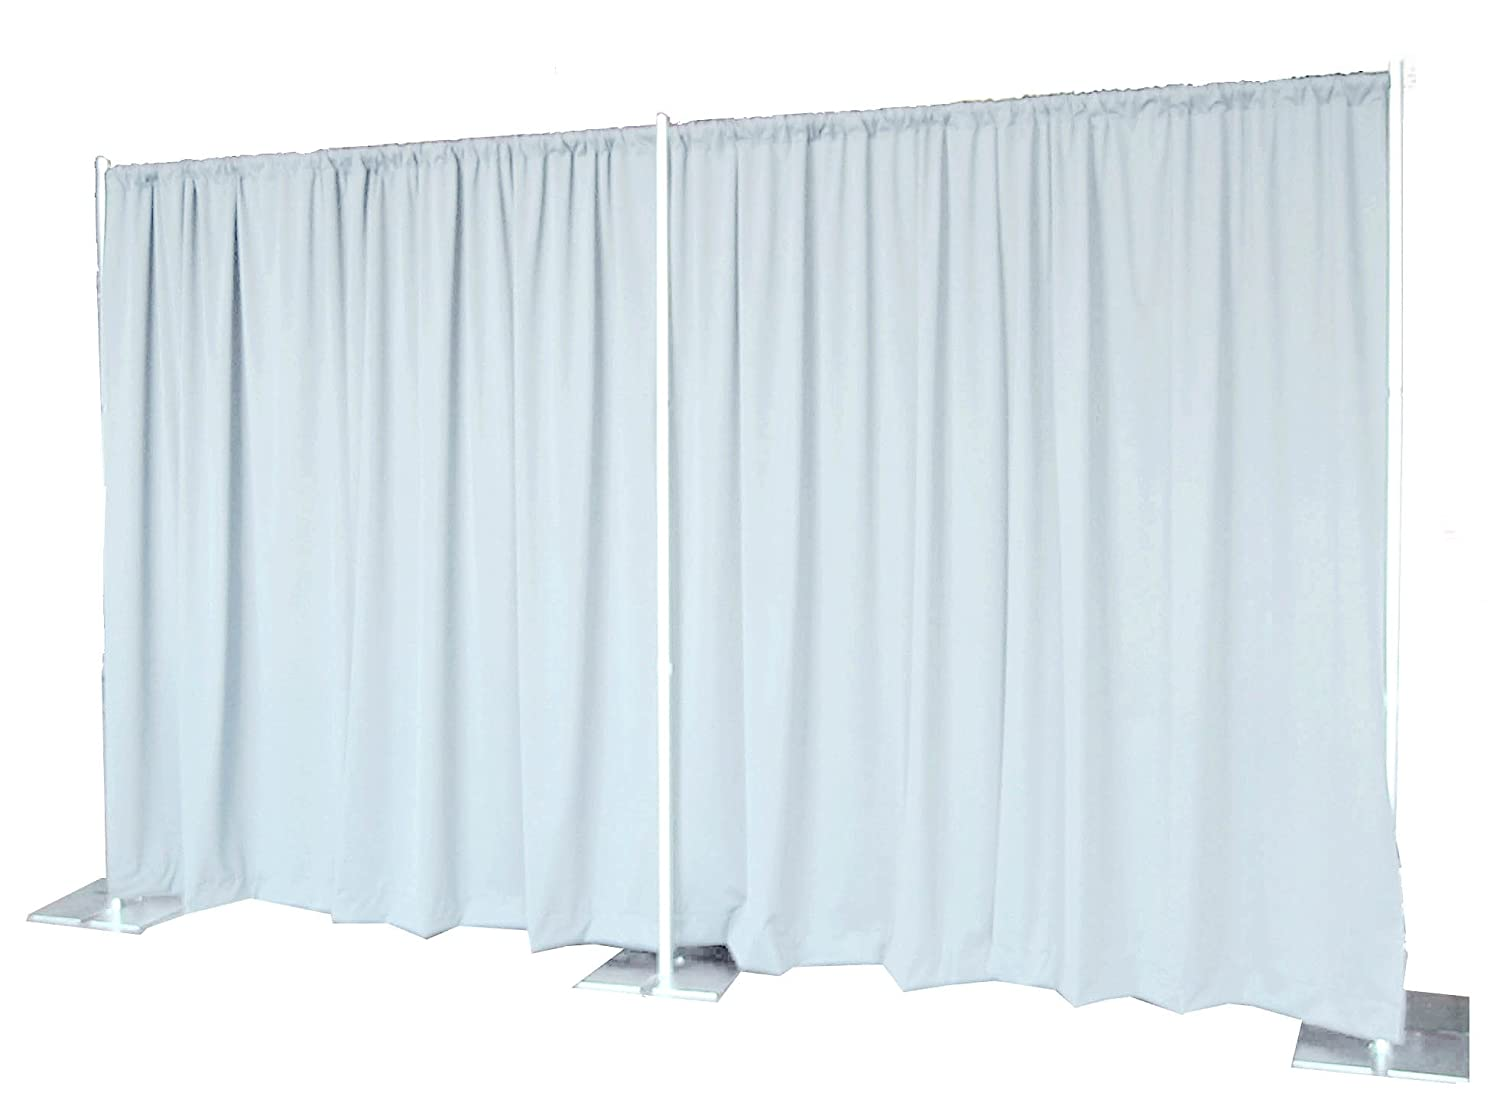 allcargos oakville markham downtown tent product rentals supplies toronto and rental tradeshow ajax blue event inc drape pipe mississauga booths trade vendor show drapes brampton scarborough